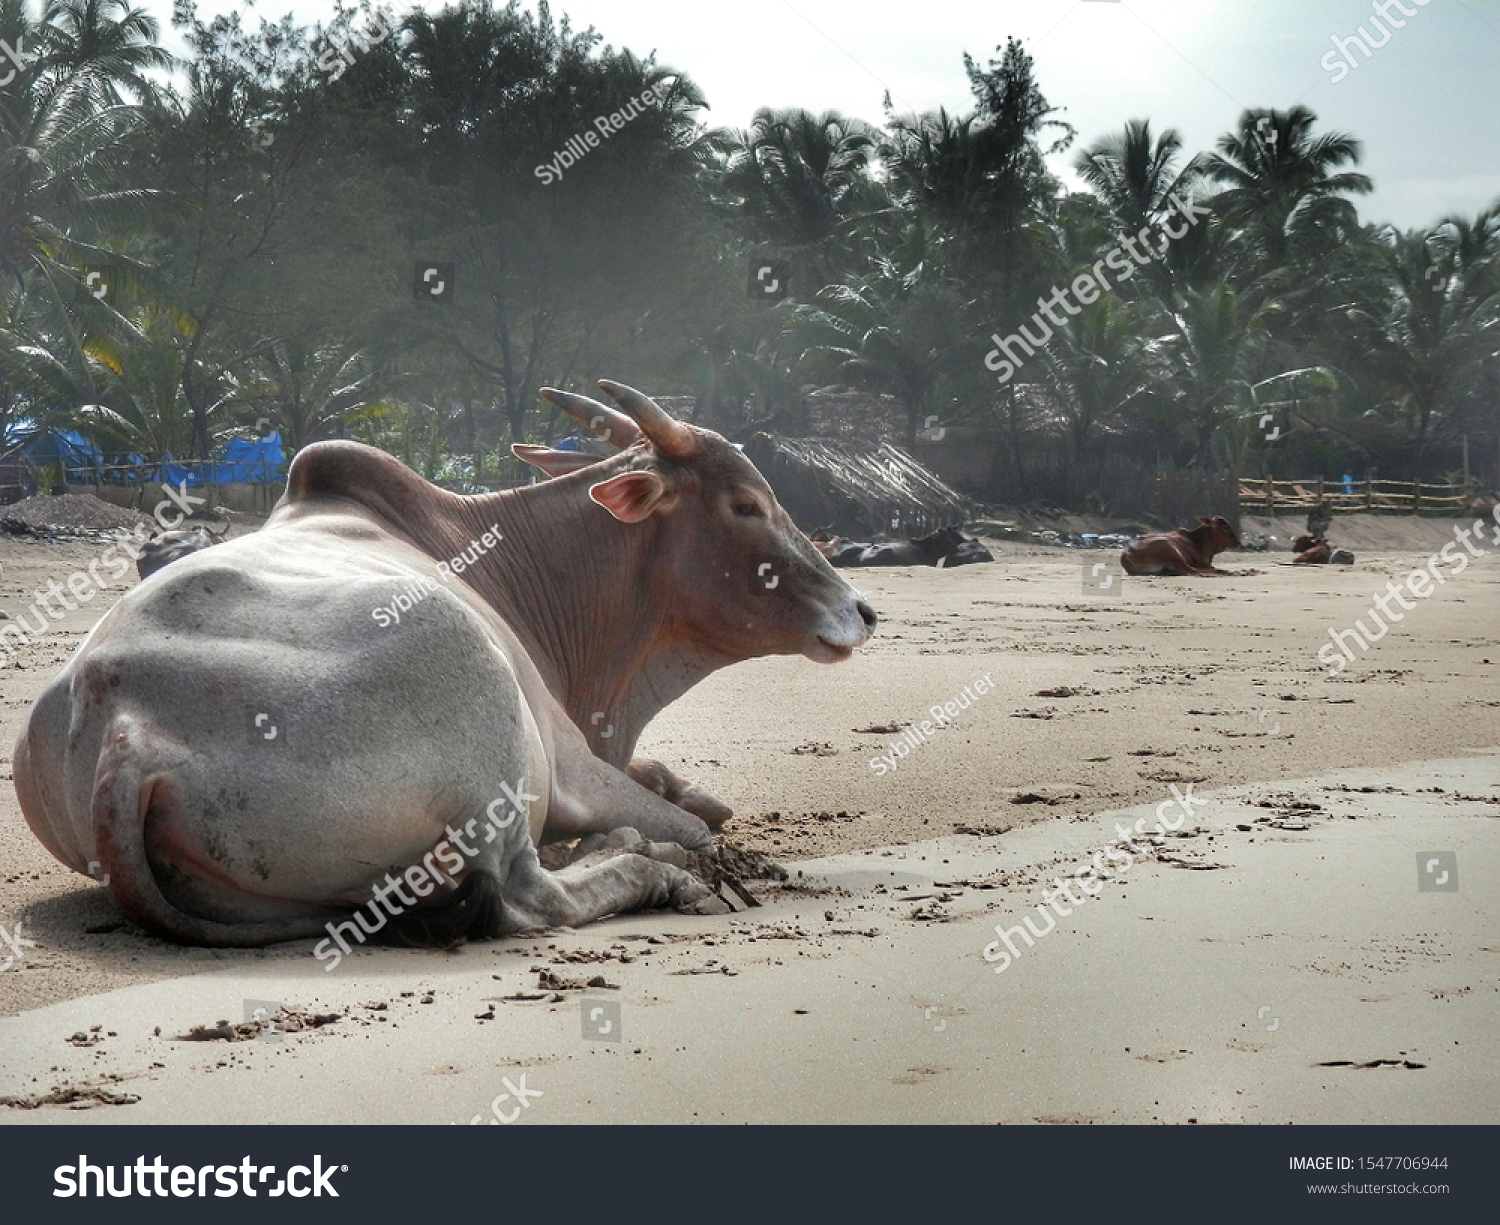 stock-photo-cows-on-the-beach-in-india-s